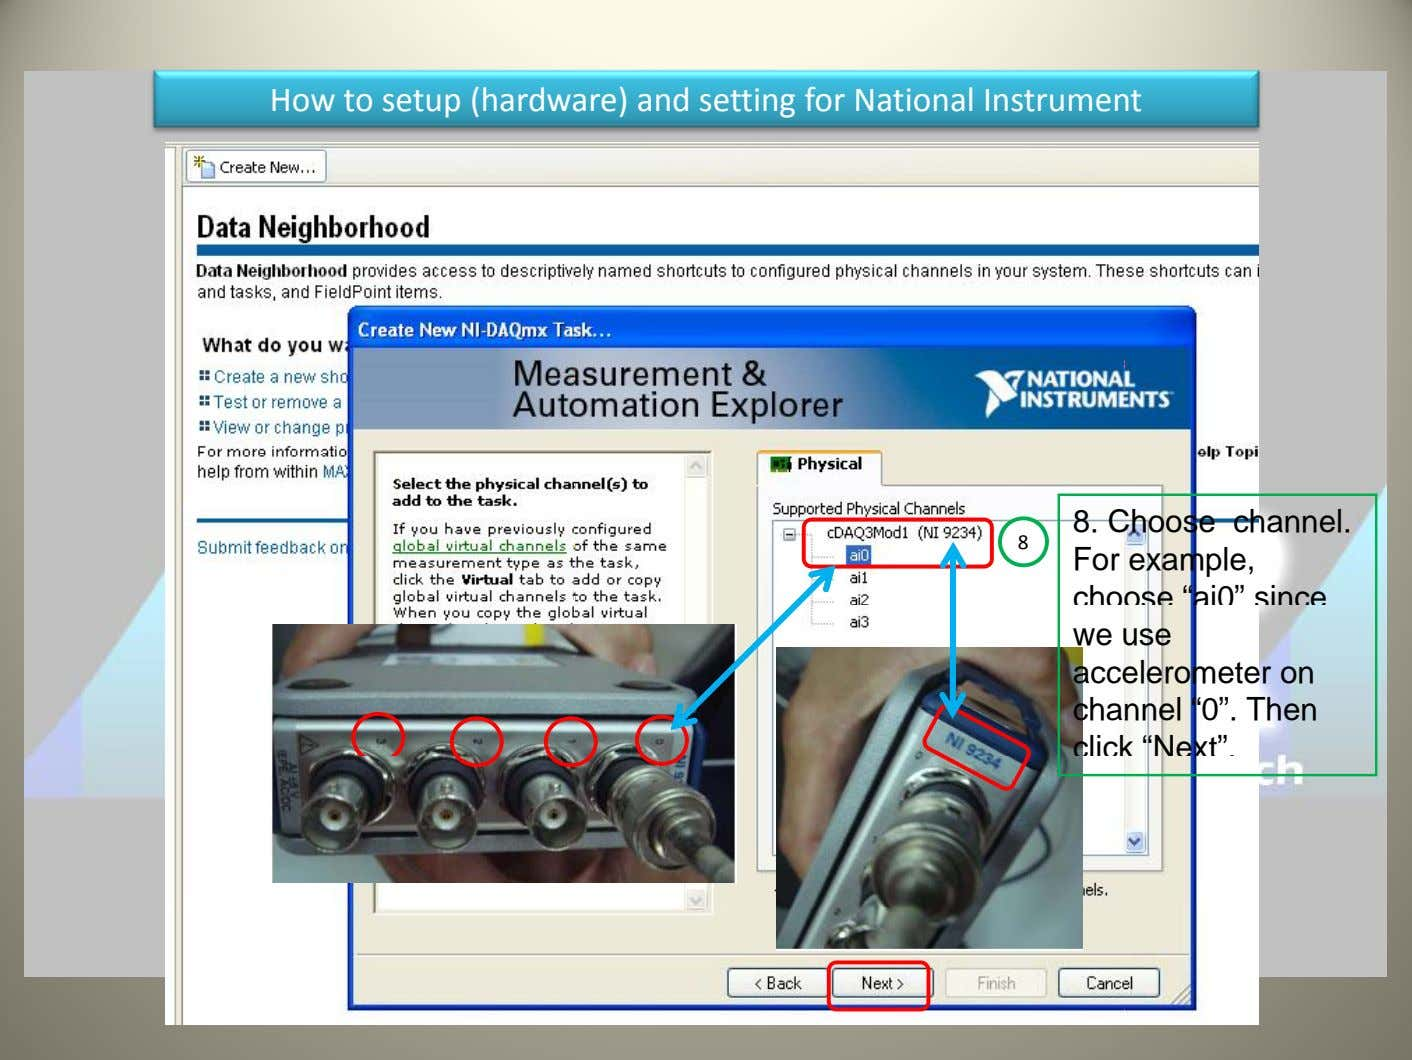 How to setup (hardware) and setting for National Instrument 8 8. Choose channel. For example, choose